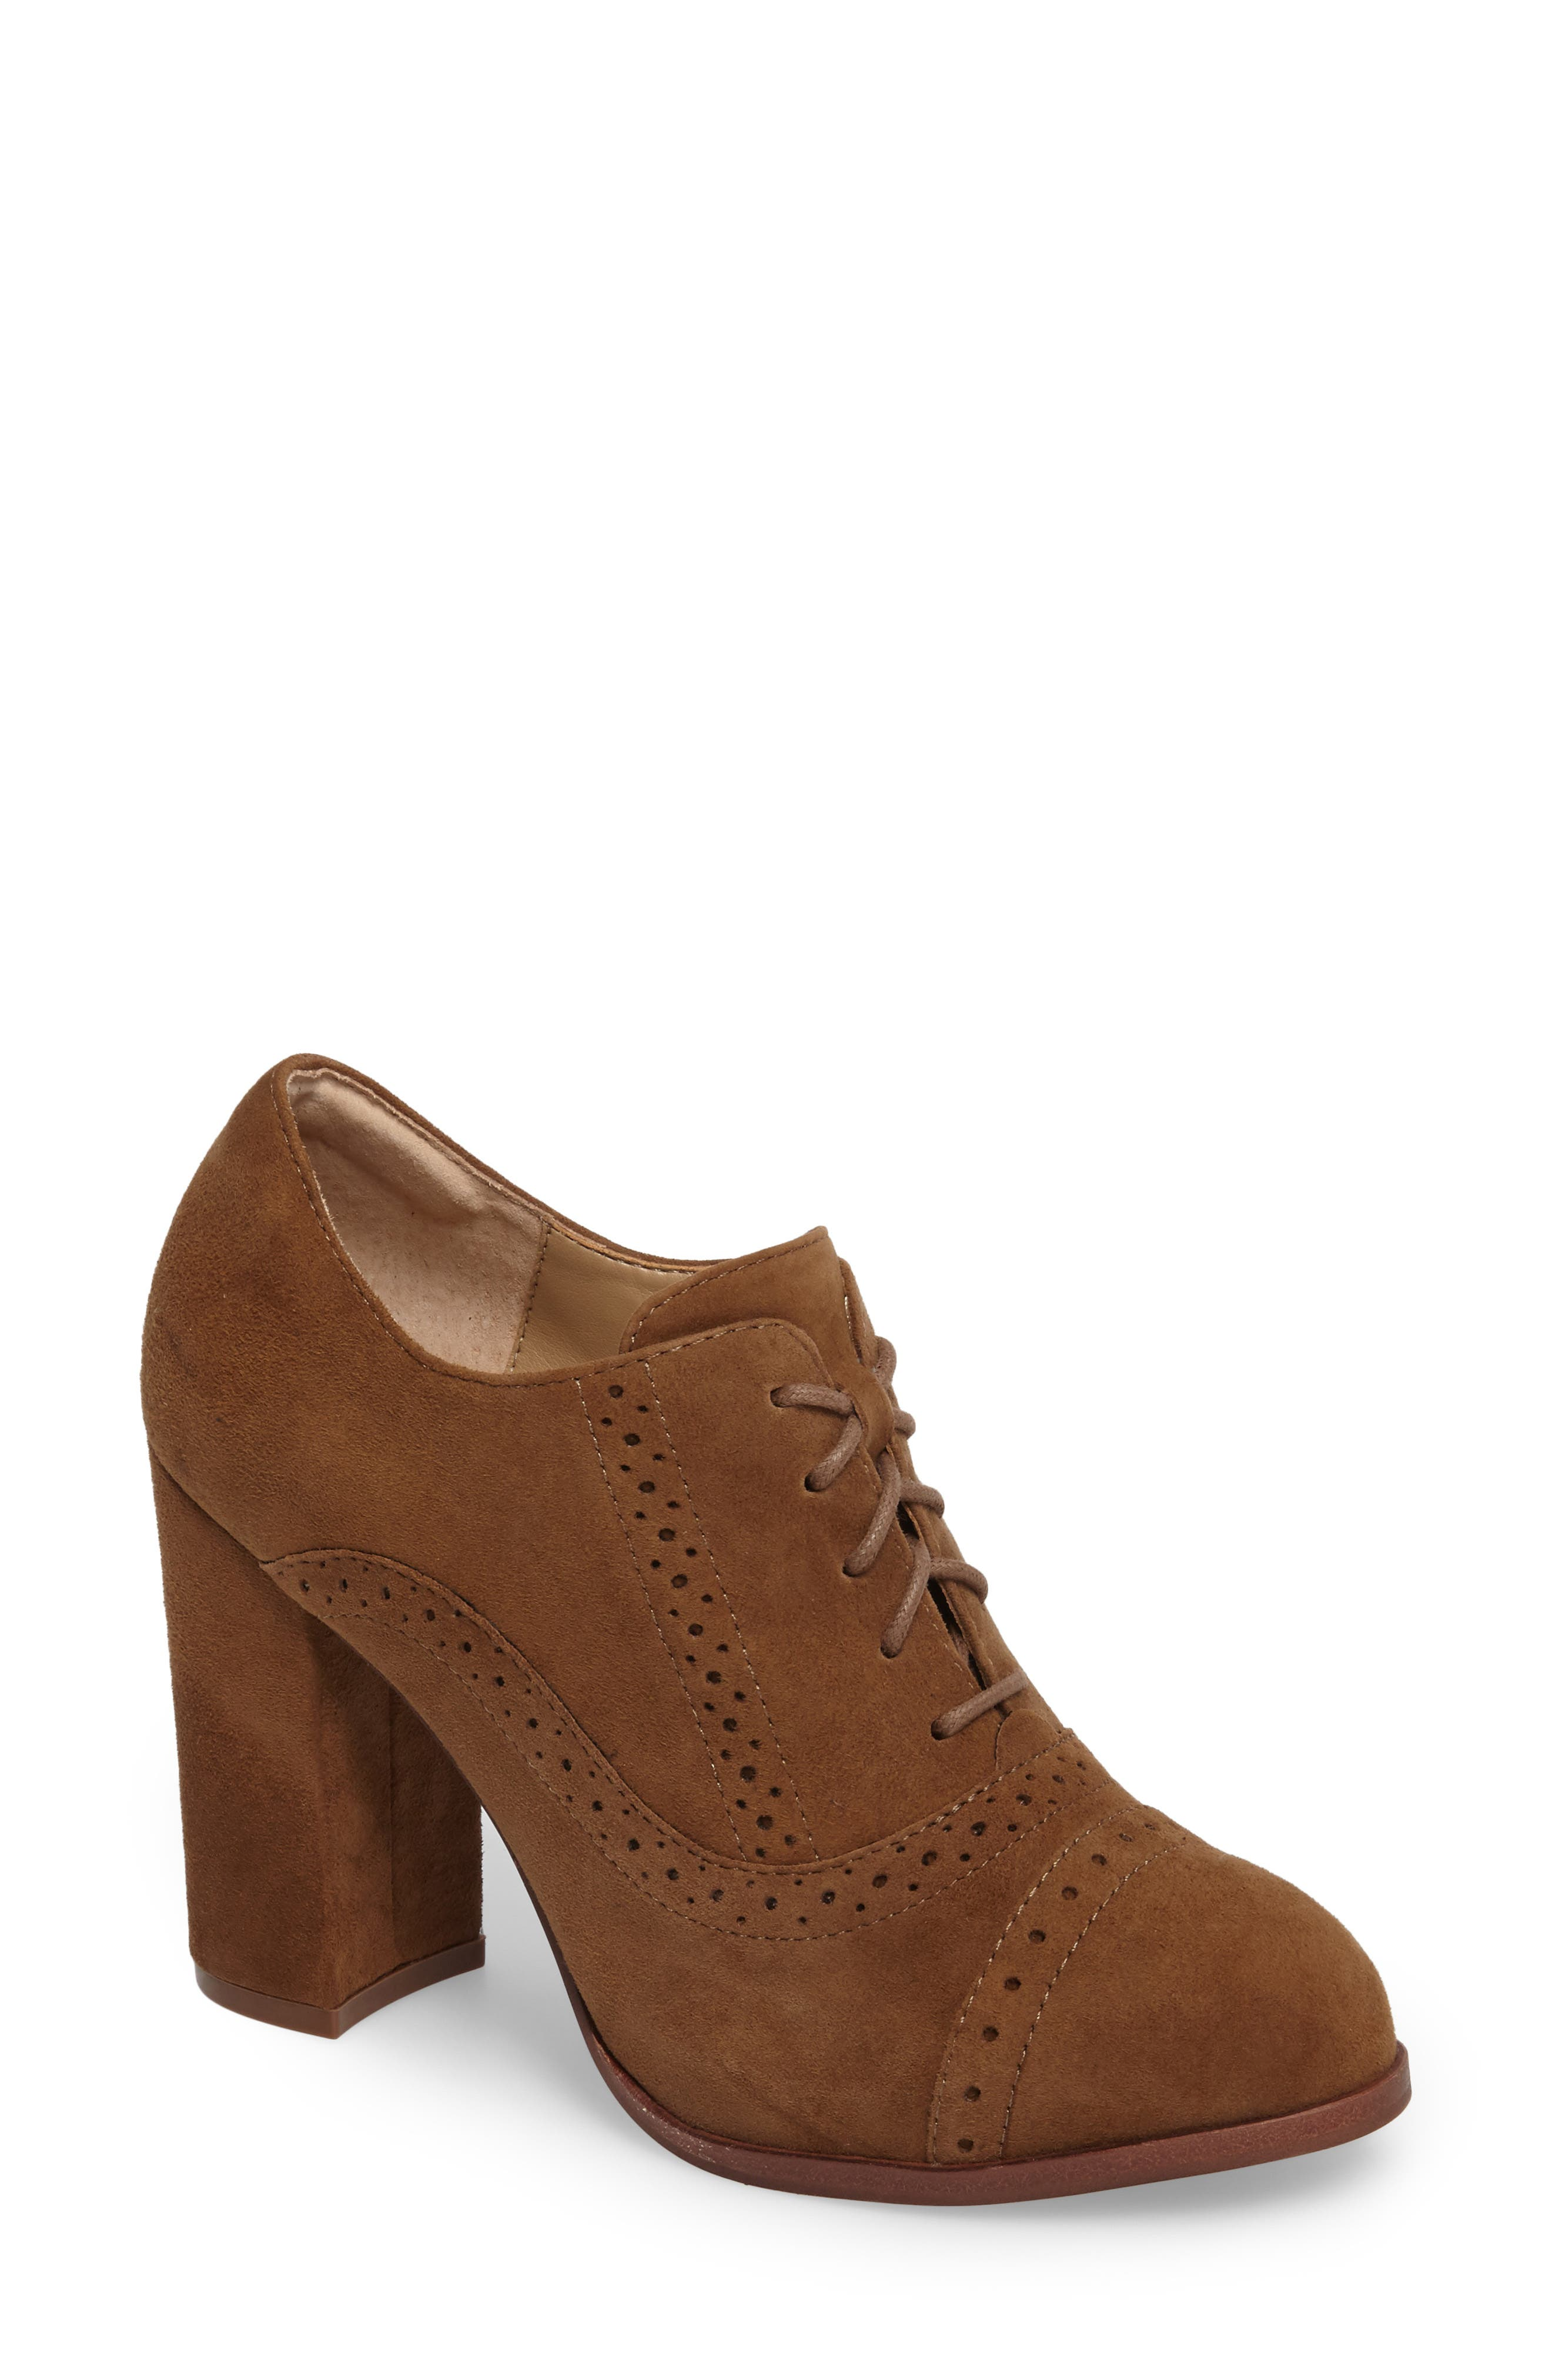 ISOLÁ Holli Oxford Pump, Main, color, LIGHT BROWN SUEDE